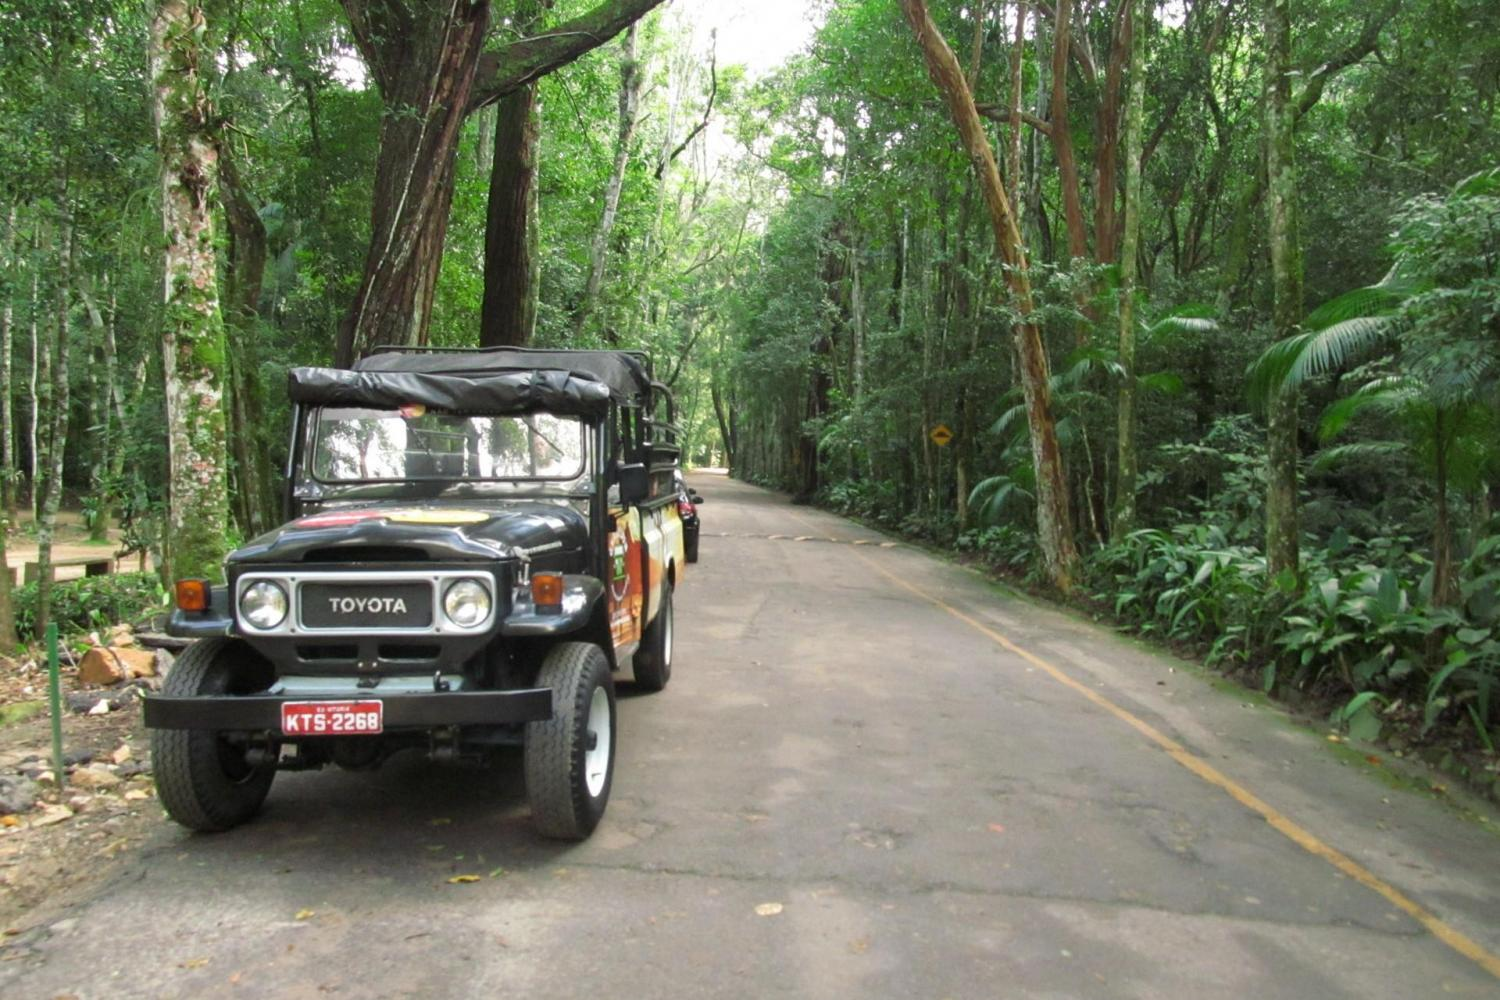 Experience nature on a jeep tour of the Tijuca Rainforest